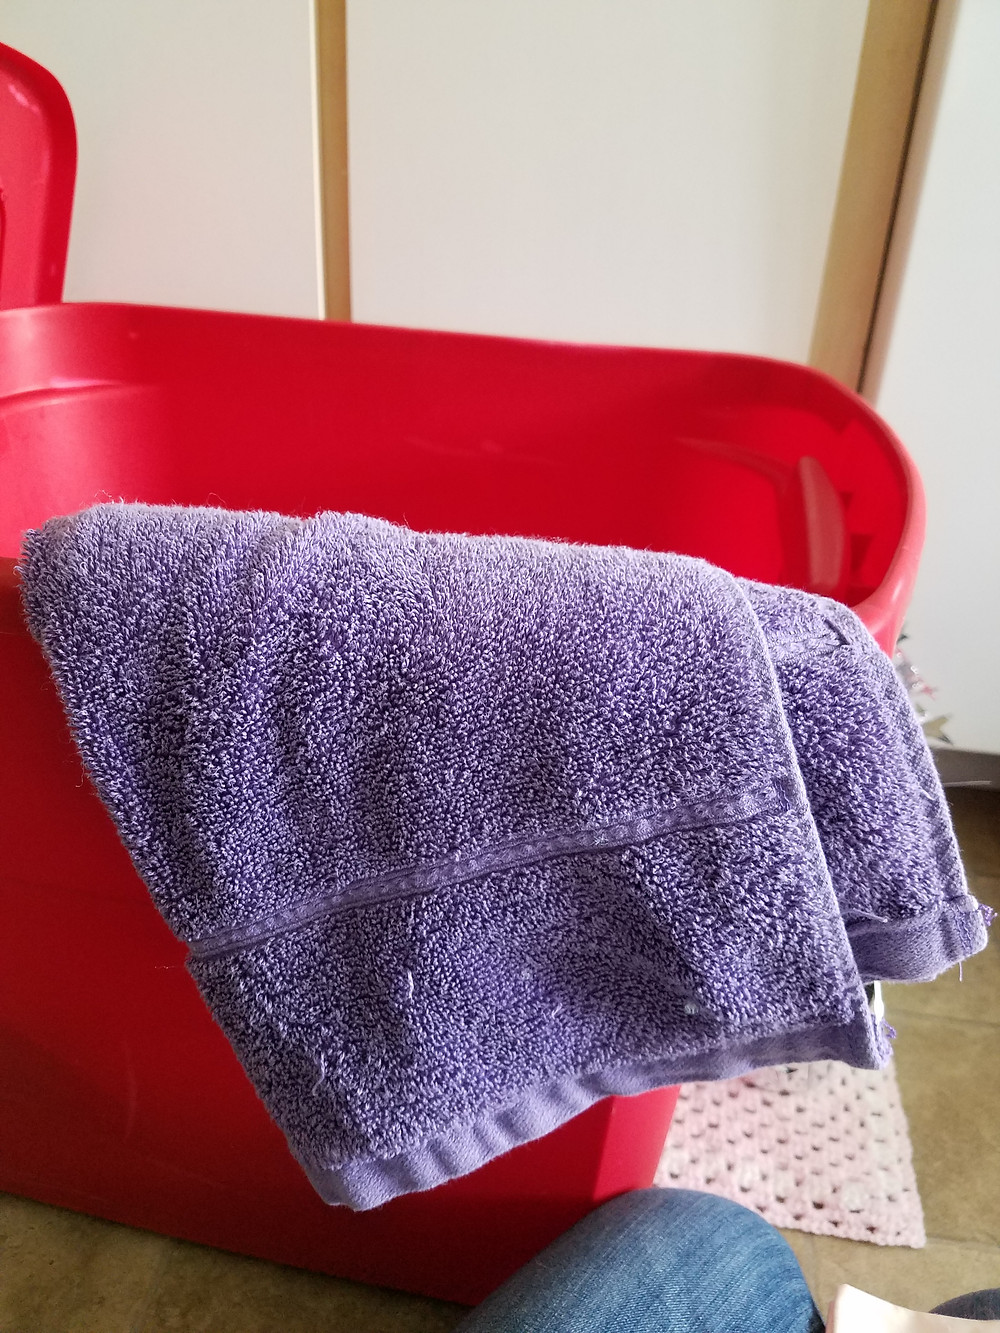 A purple hand towel draped over the side of the red bin.